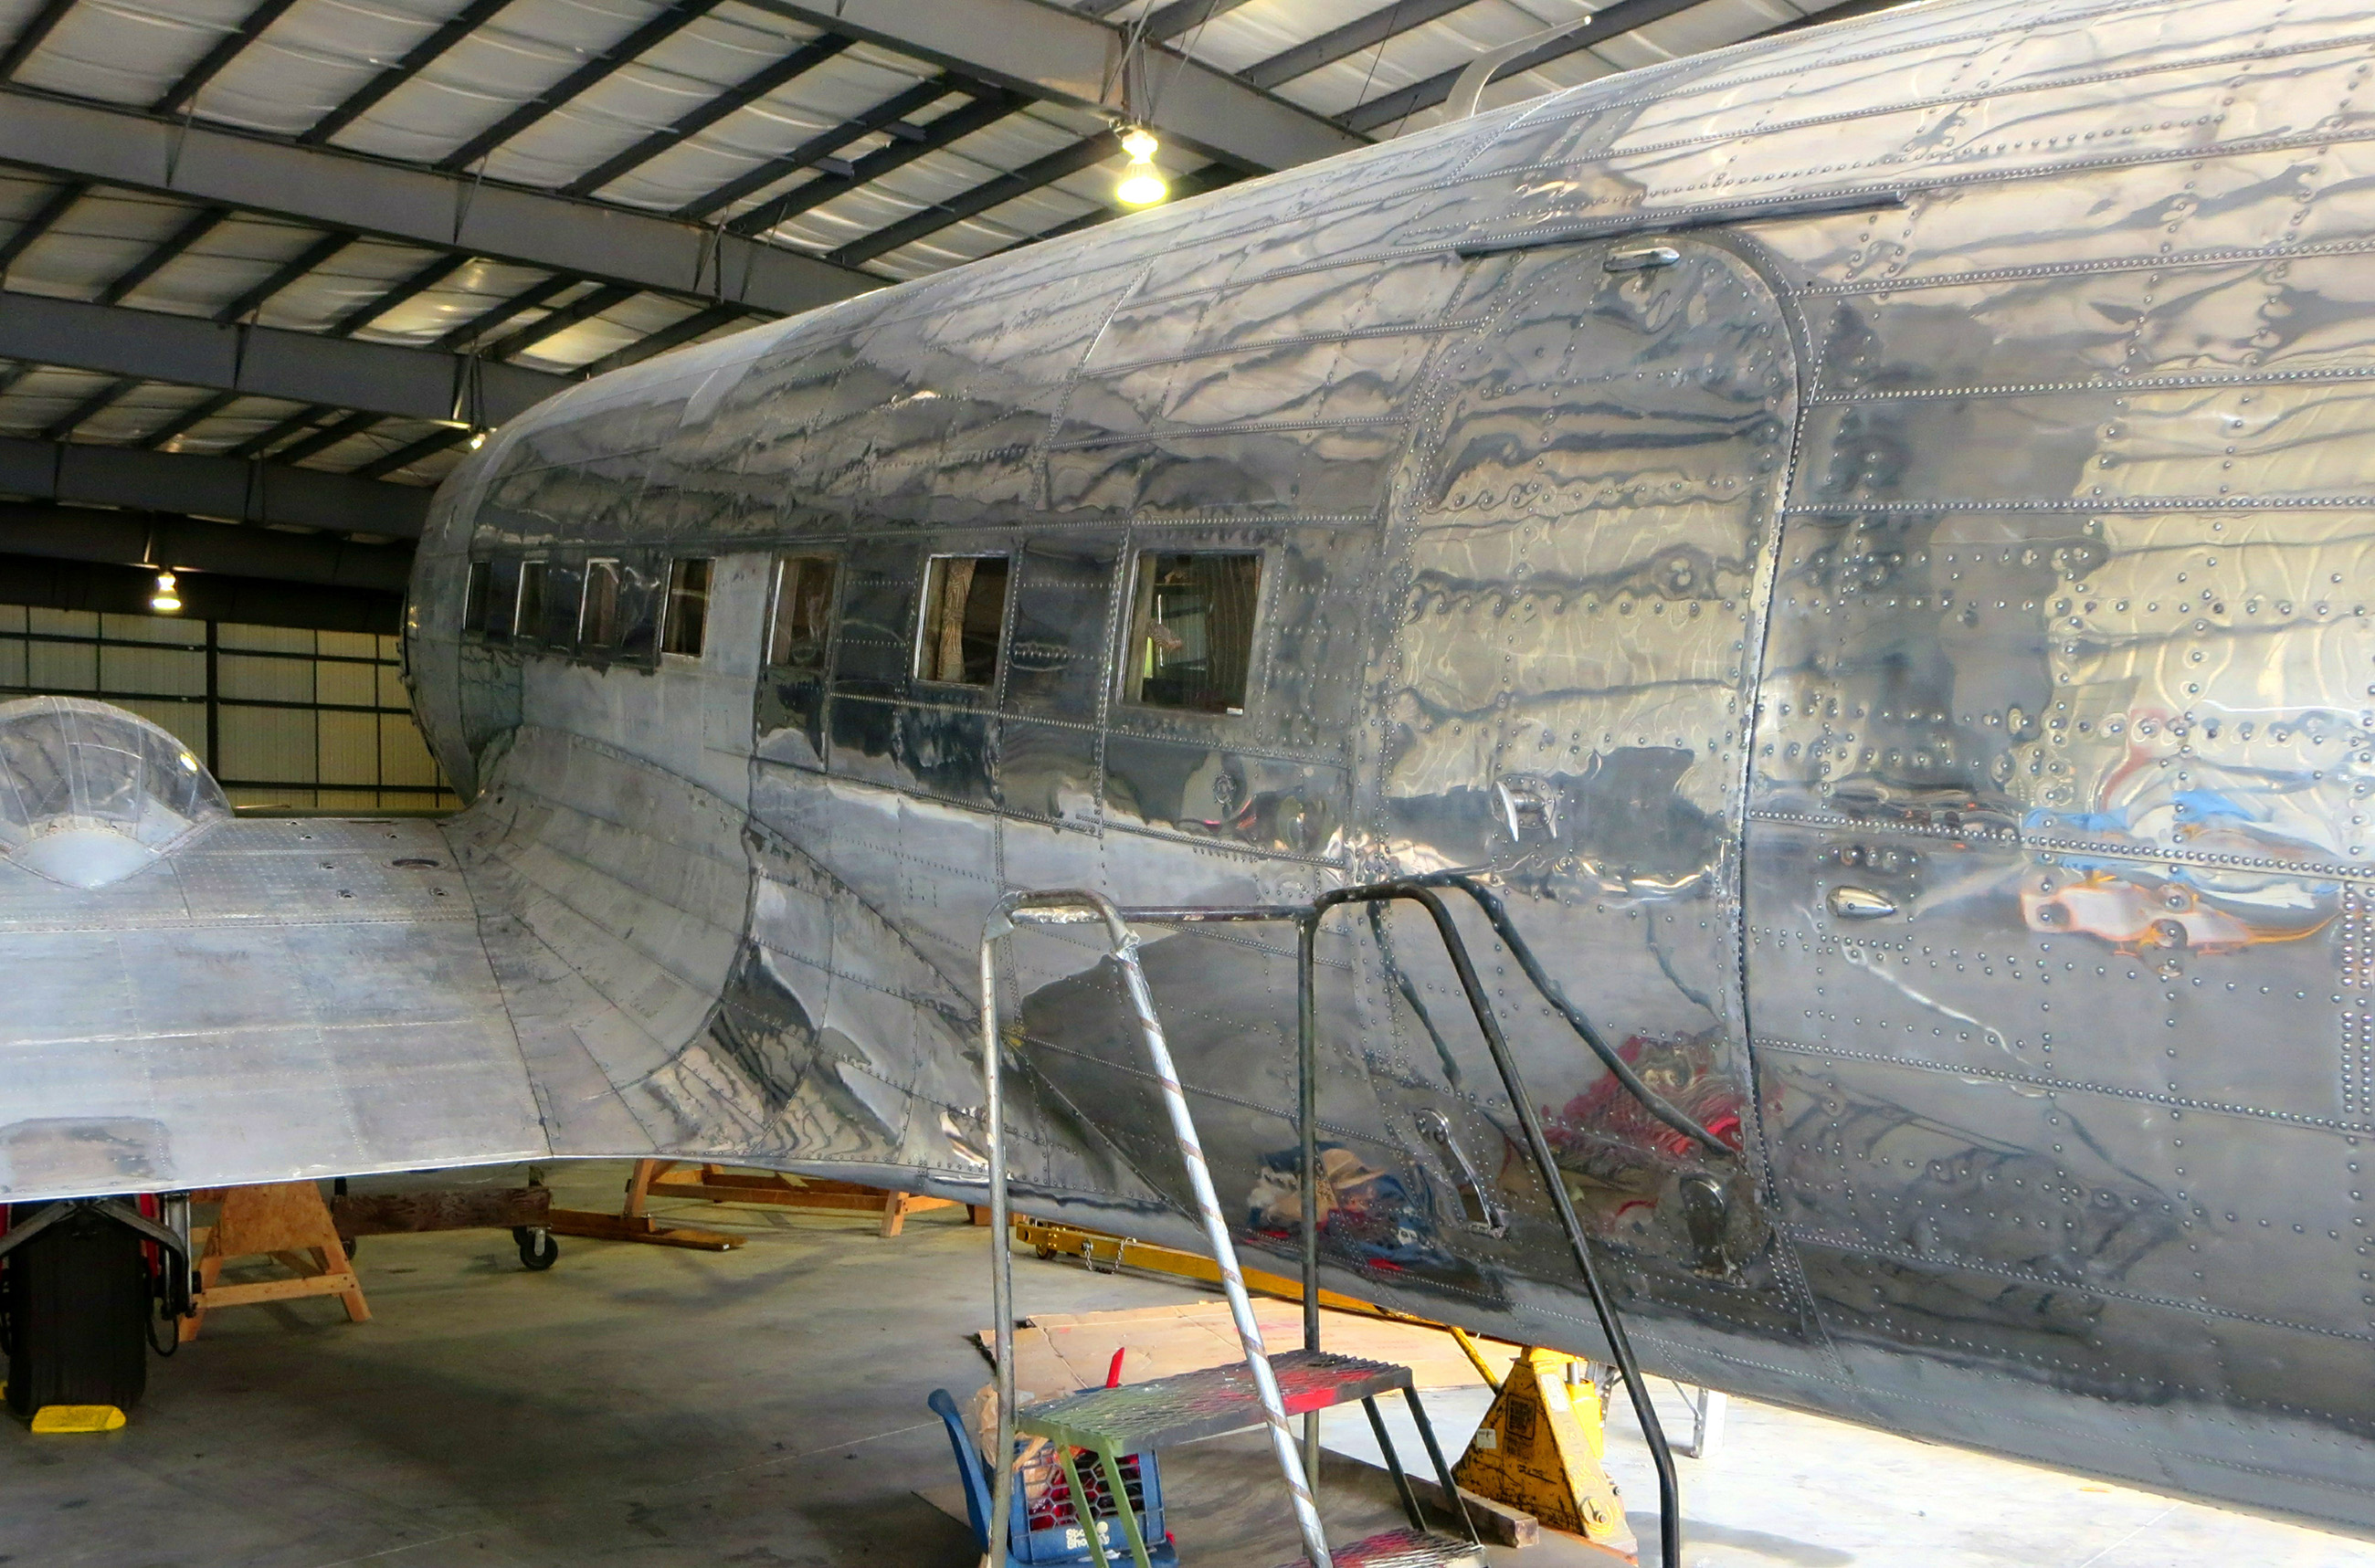 The fuselage is now well into the polishing process, and it's clear that the end results will be breathtakingly beautiful. (photo via NEAM)